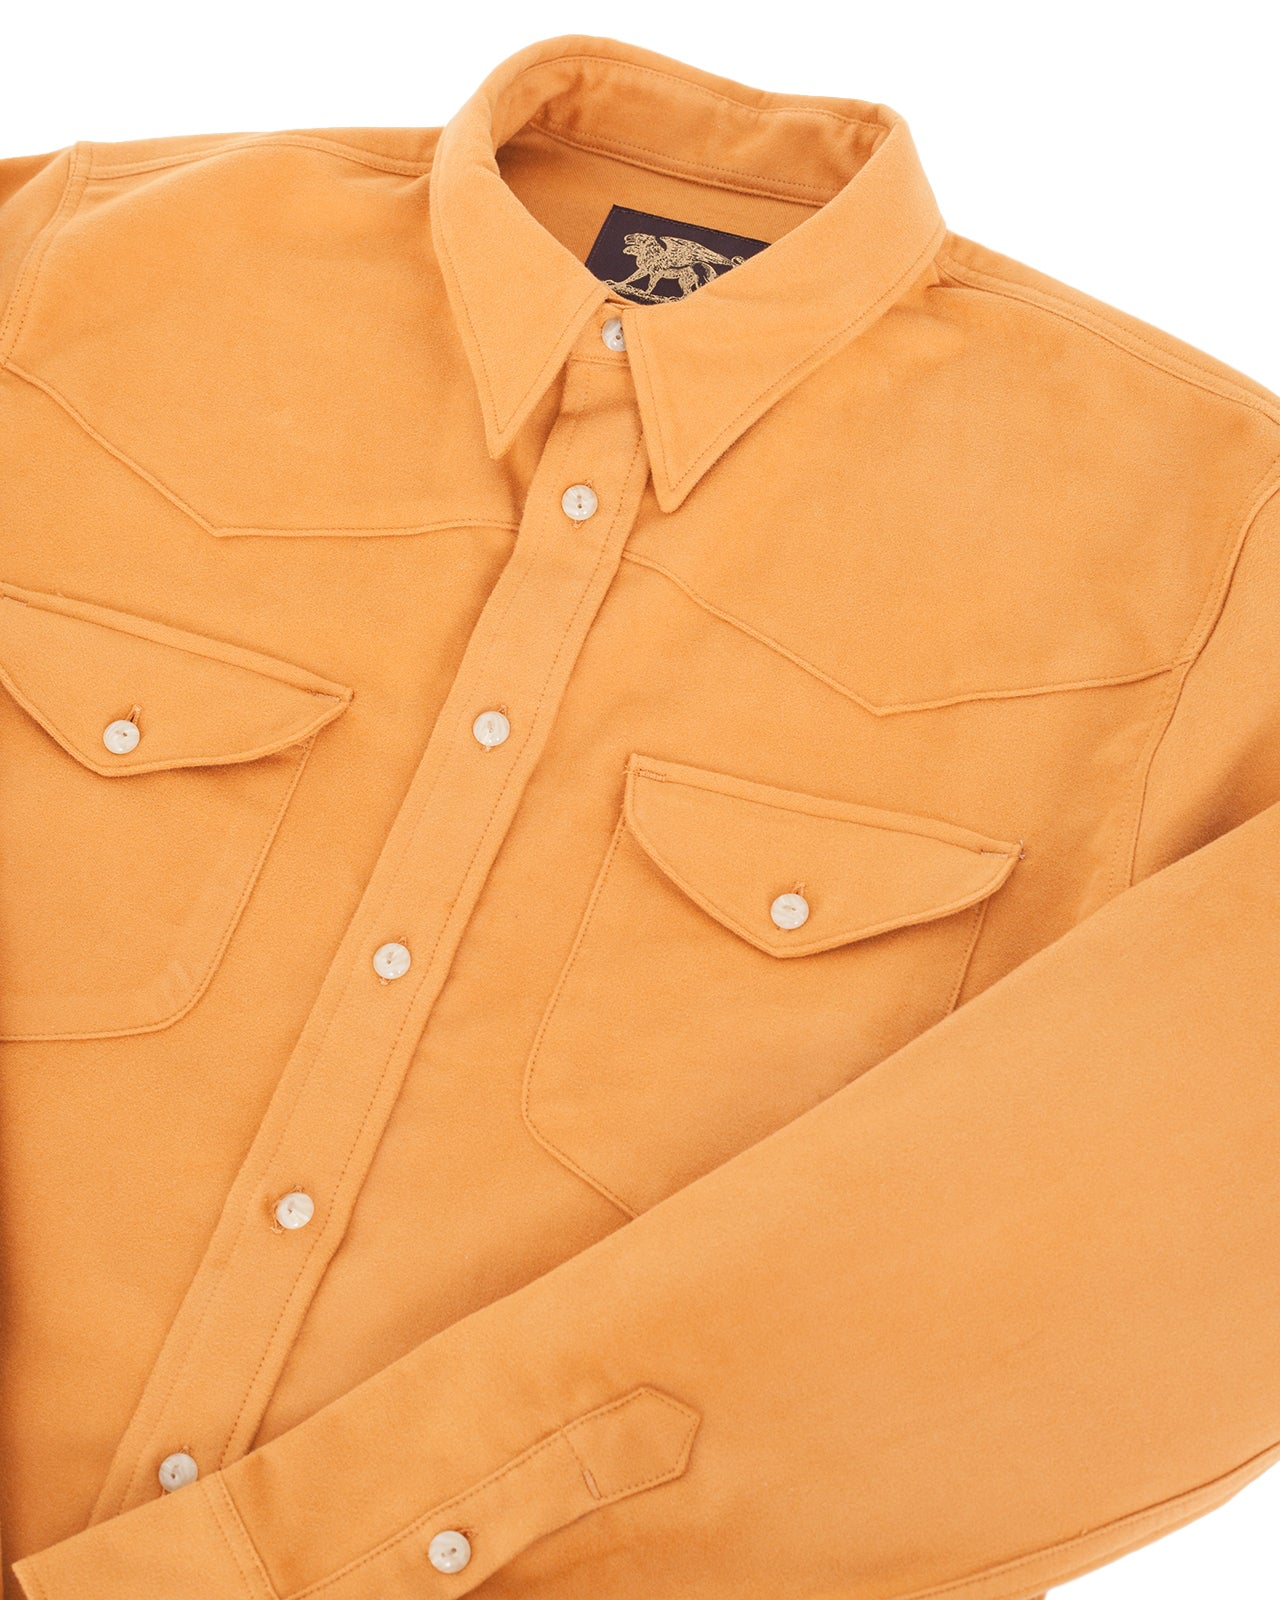 Indigofera Manolito Shirt, Moleskin, Sunset Yellow